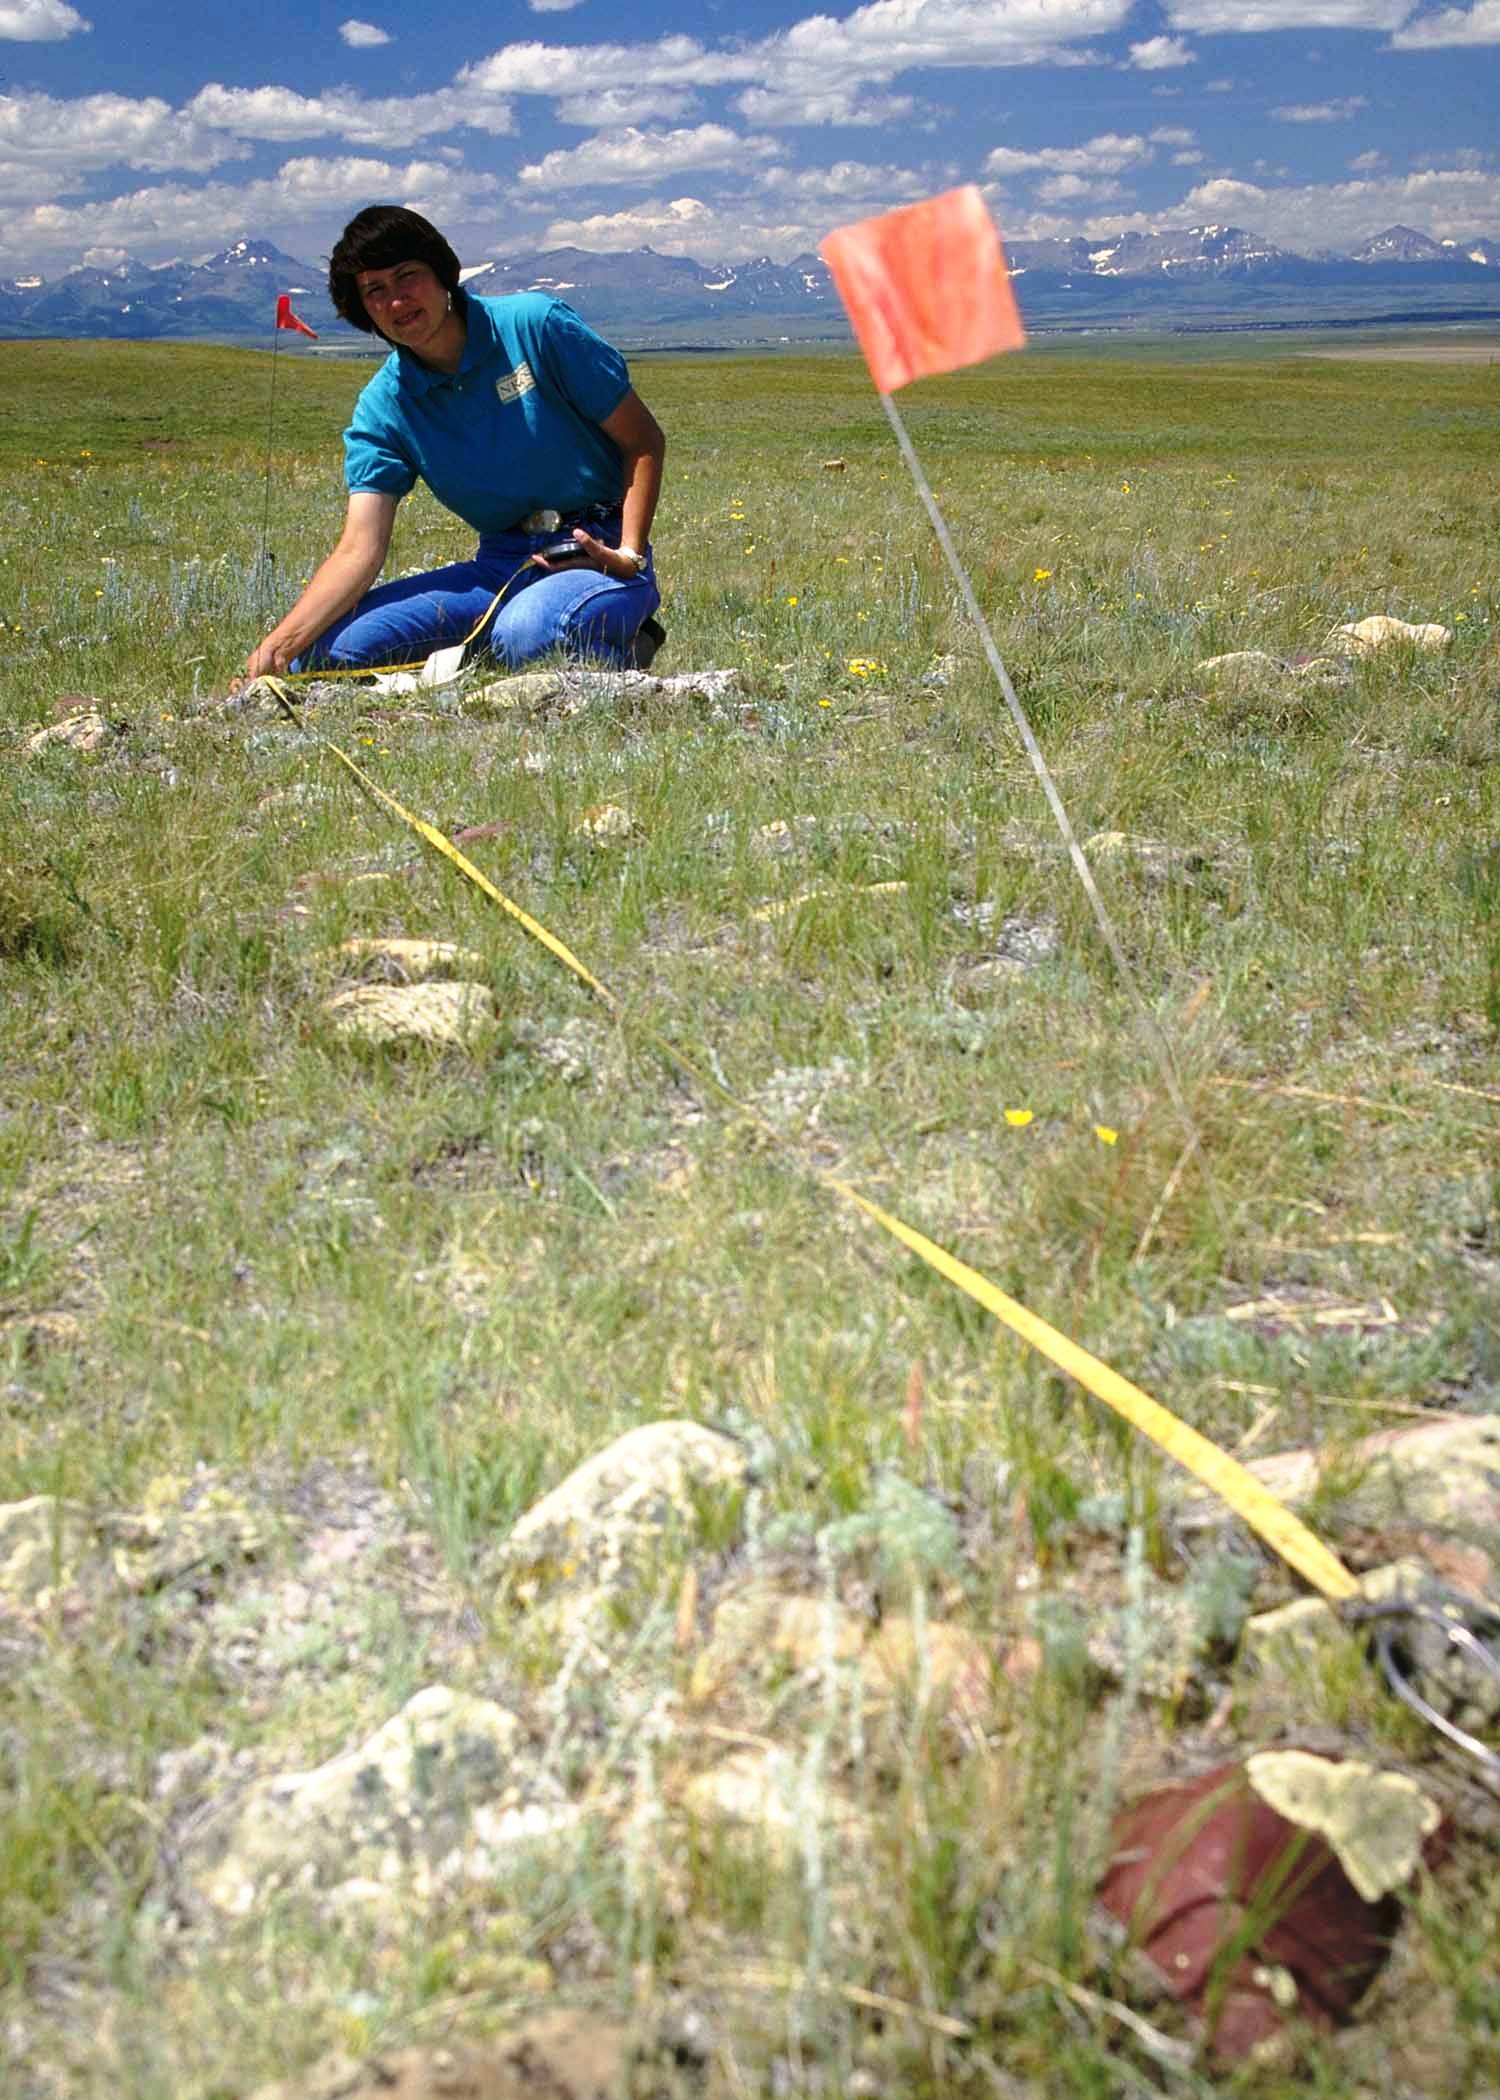 Lady stretching measuring tape from a small flag during field survey.